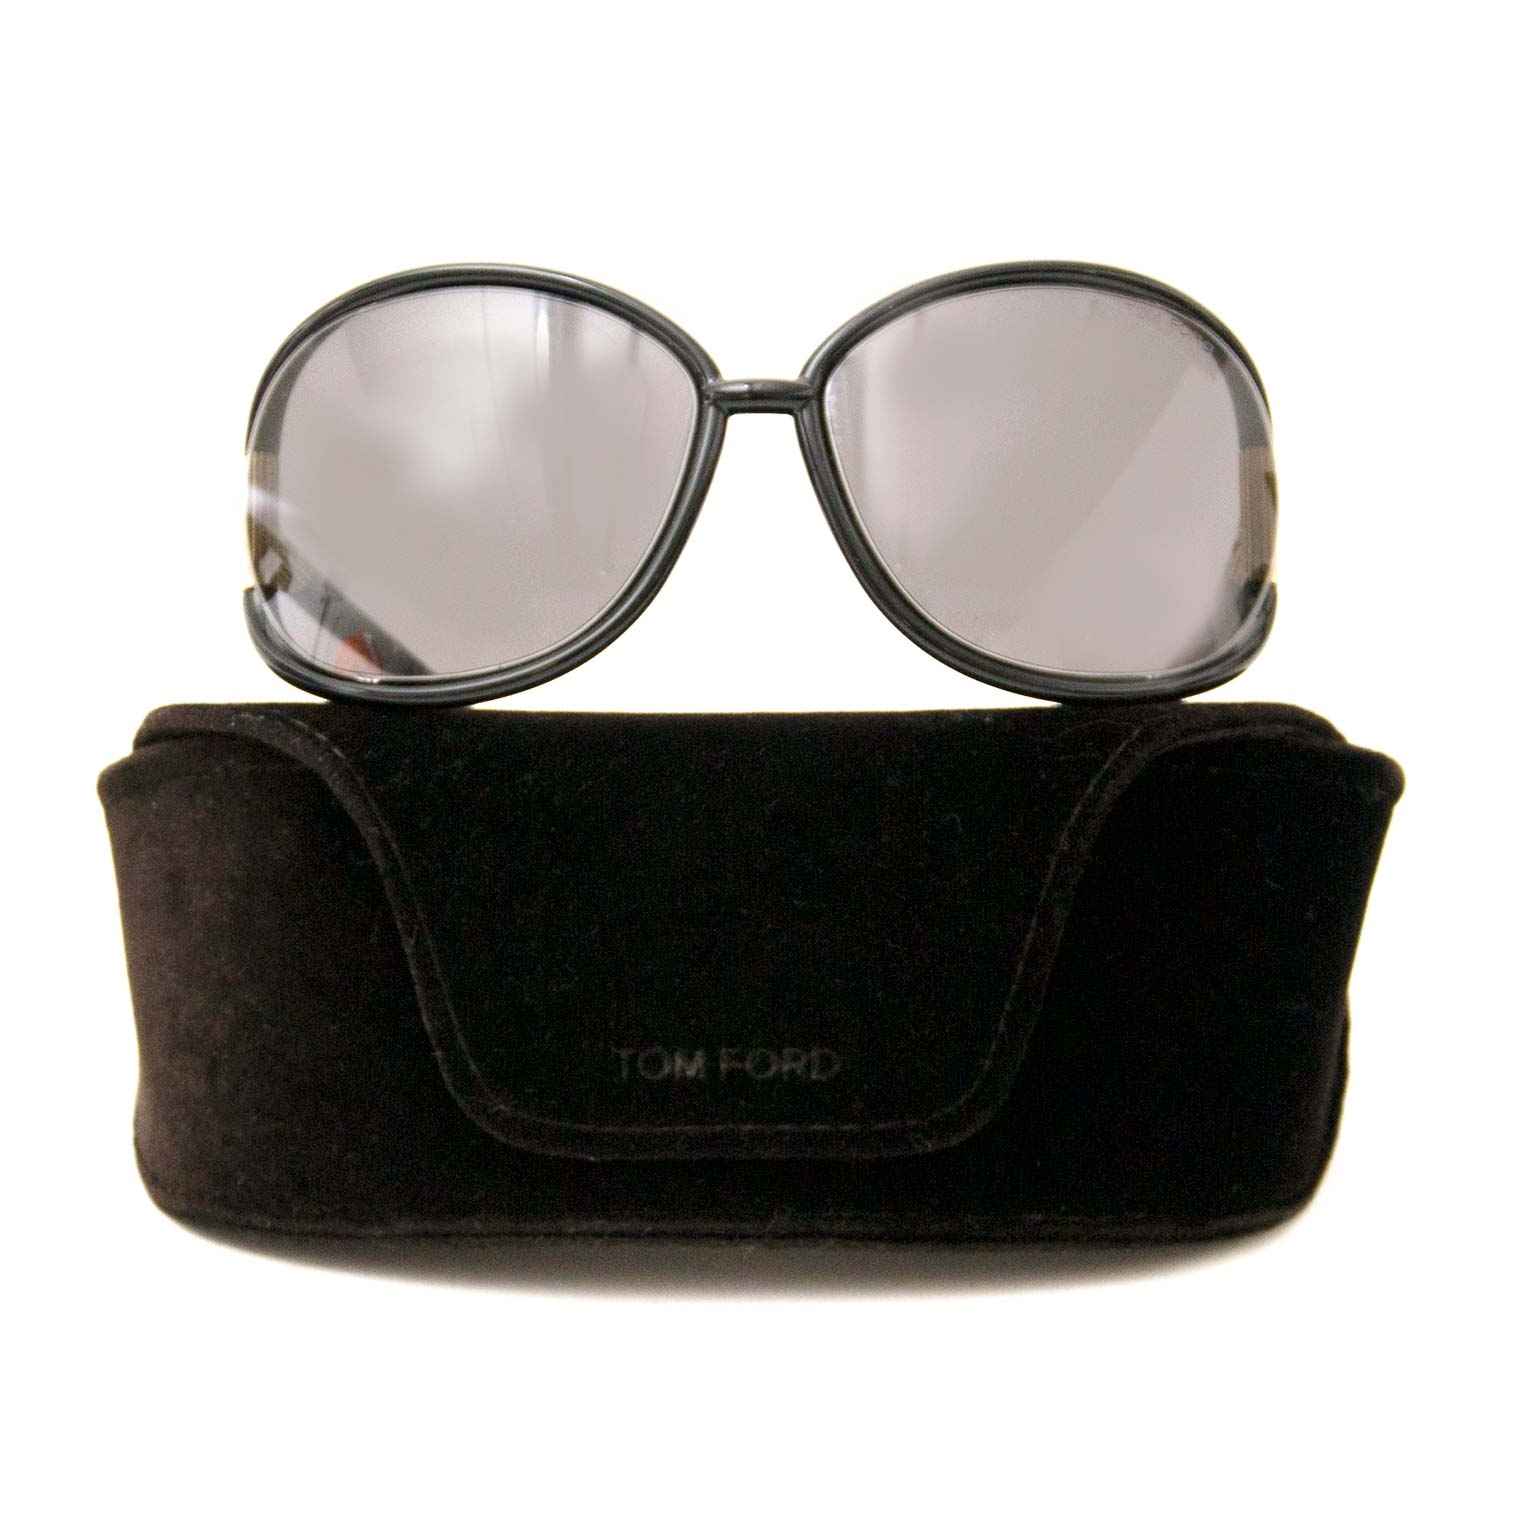 63e7a2731de4 ... buy authentic tom ford oval sunglasses now at labellov vintage fashion  webshop belgium